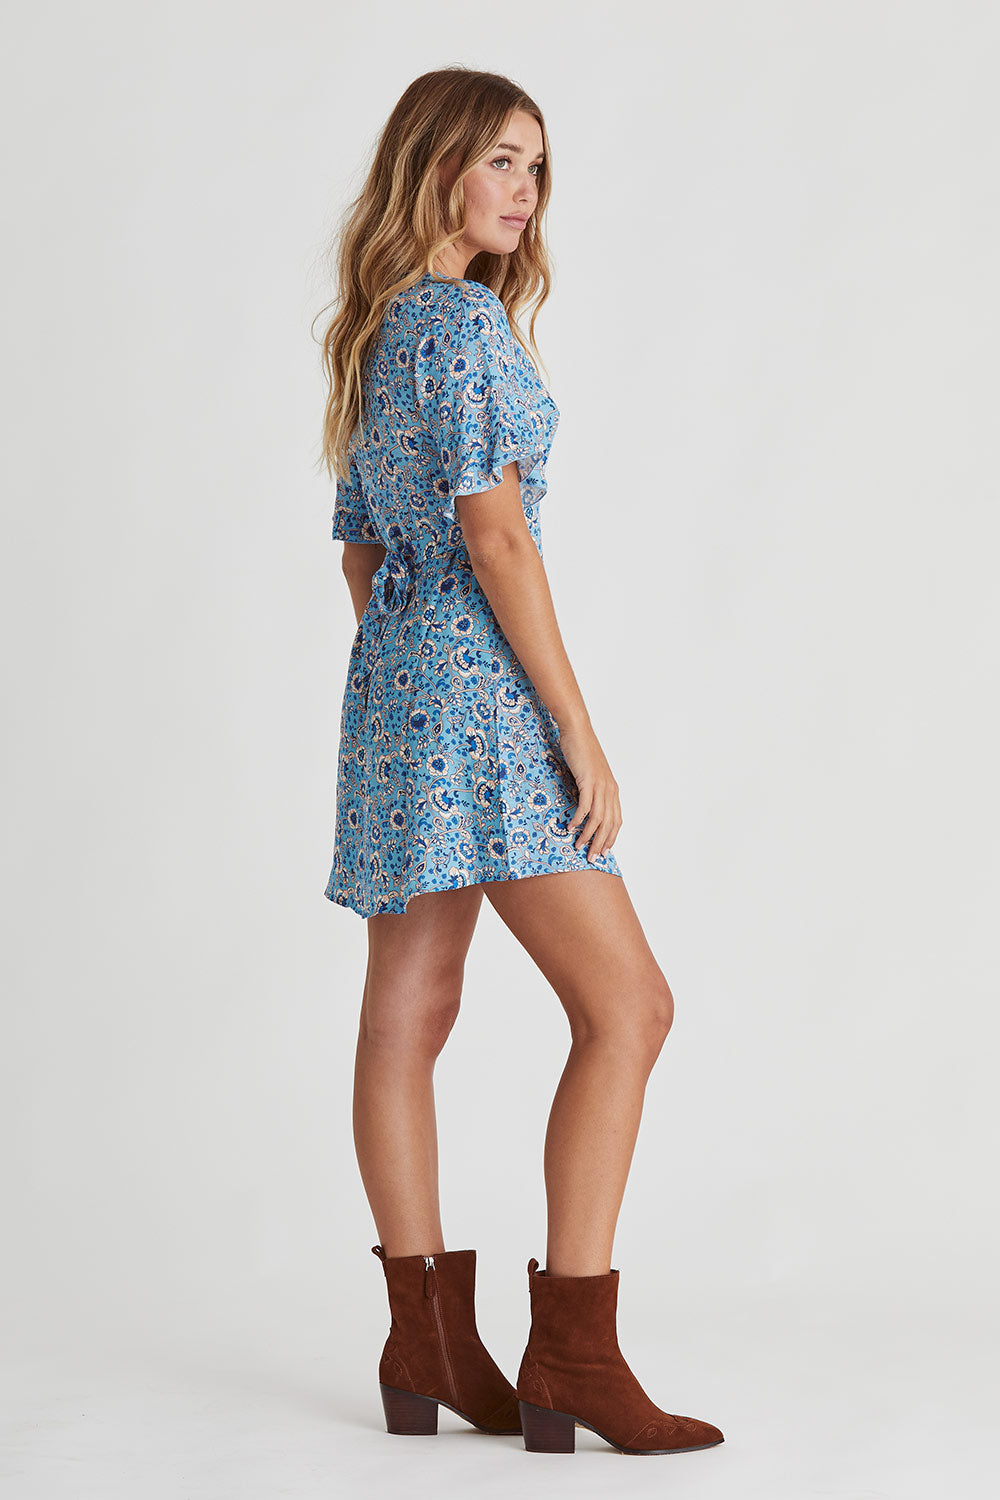 Esmee Mini Dress in Lakeside